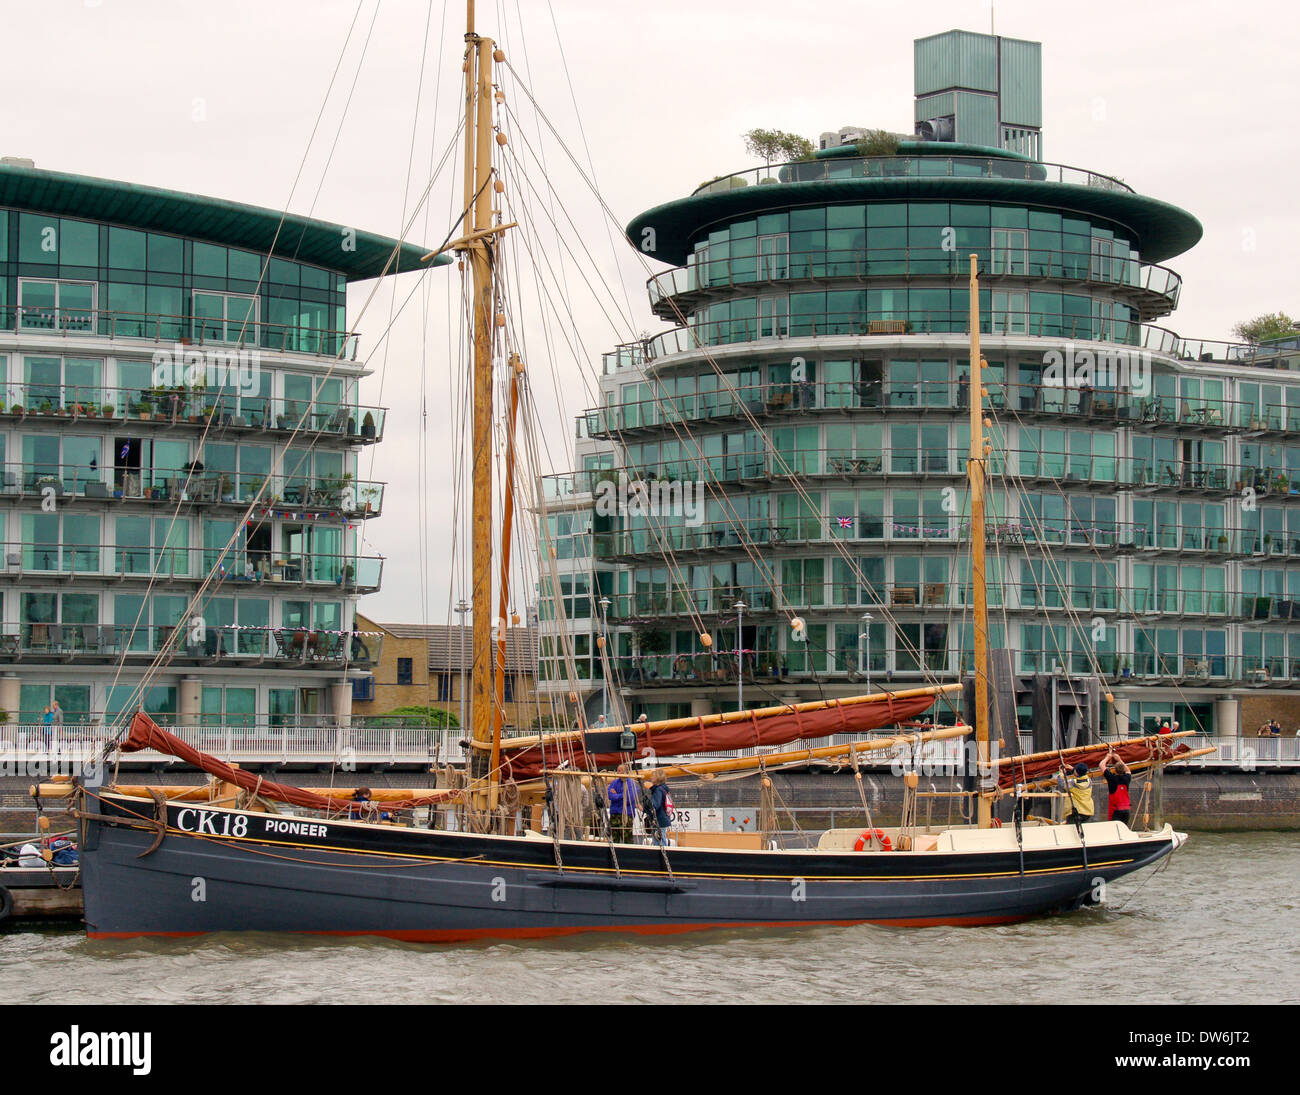 1864 70ft Essex smack Pioneer dredging oysters in the North Sea River Thames London during Thames Diamond Jubilee Pageant - Stock Image